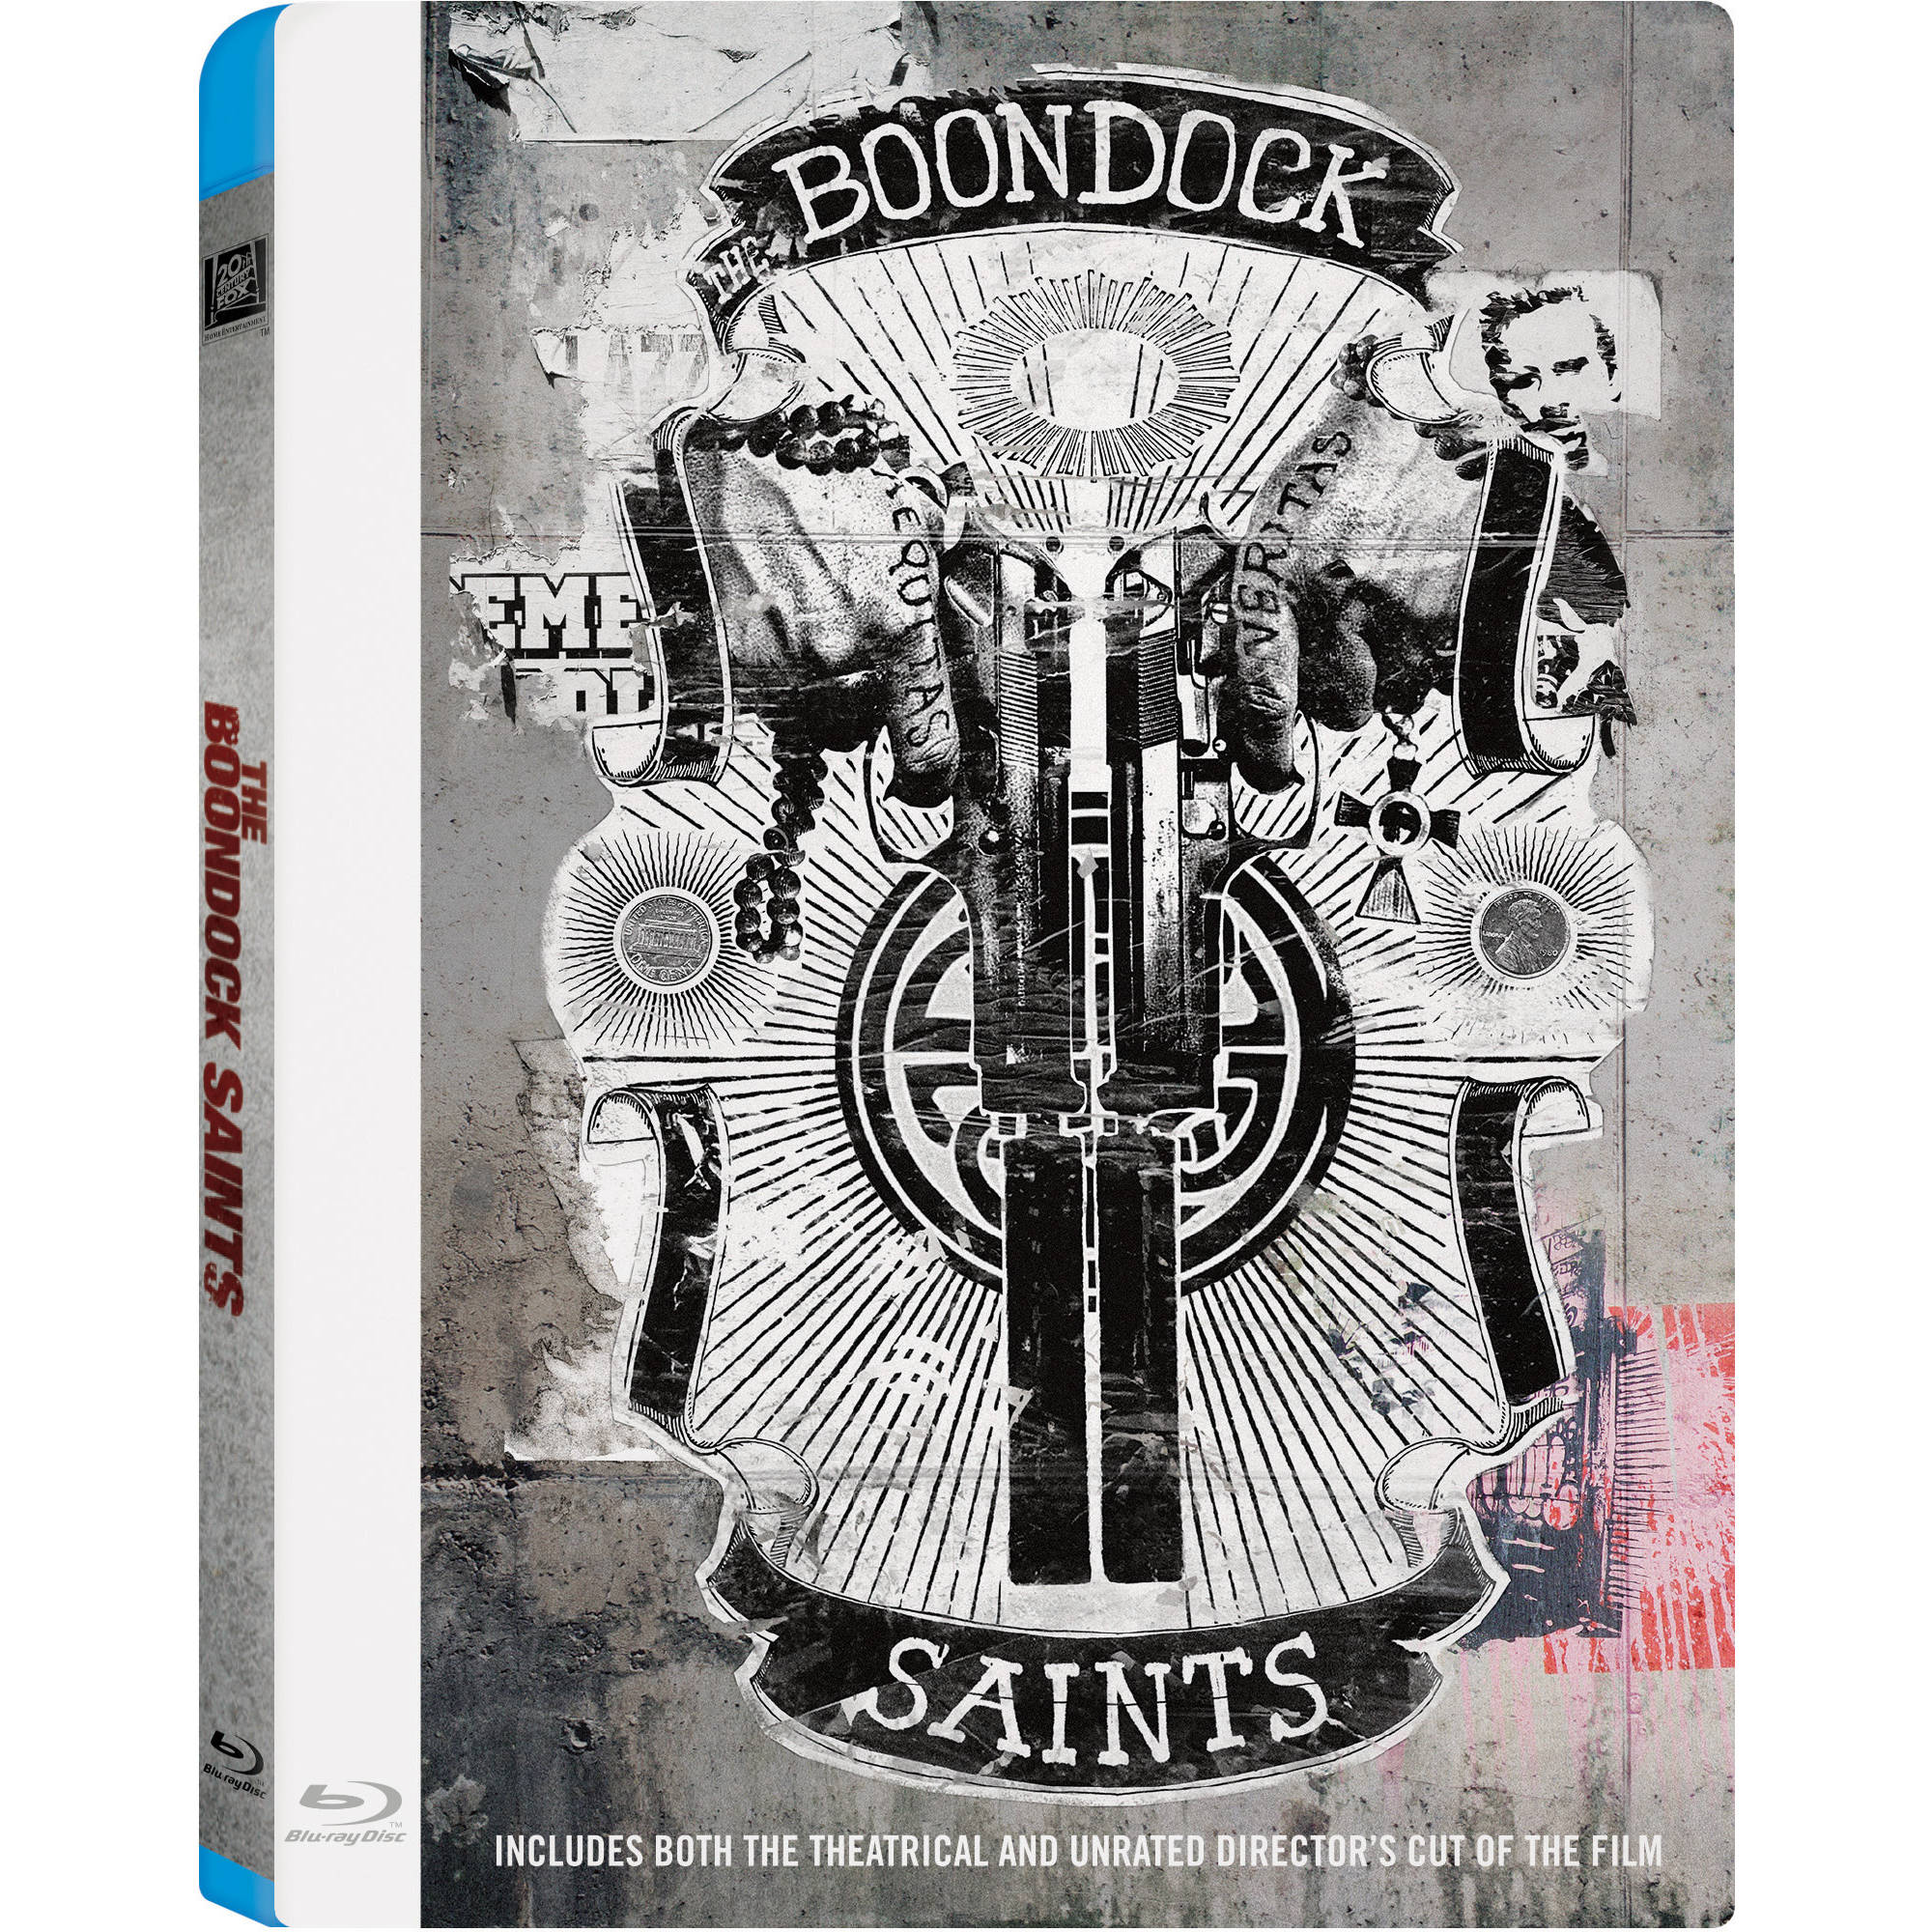 The Boondock Saints (Blu-ray) (Widescreen)